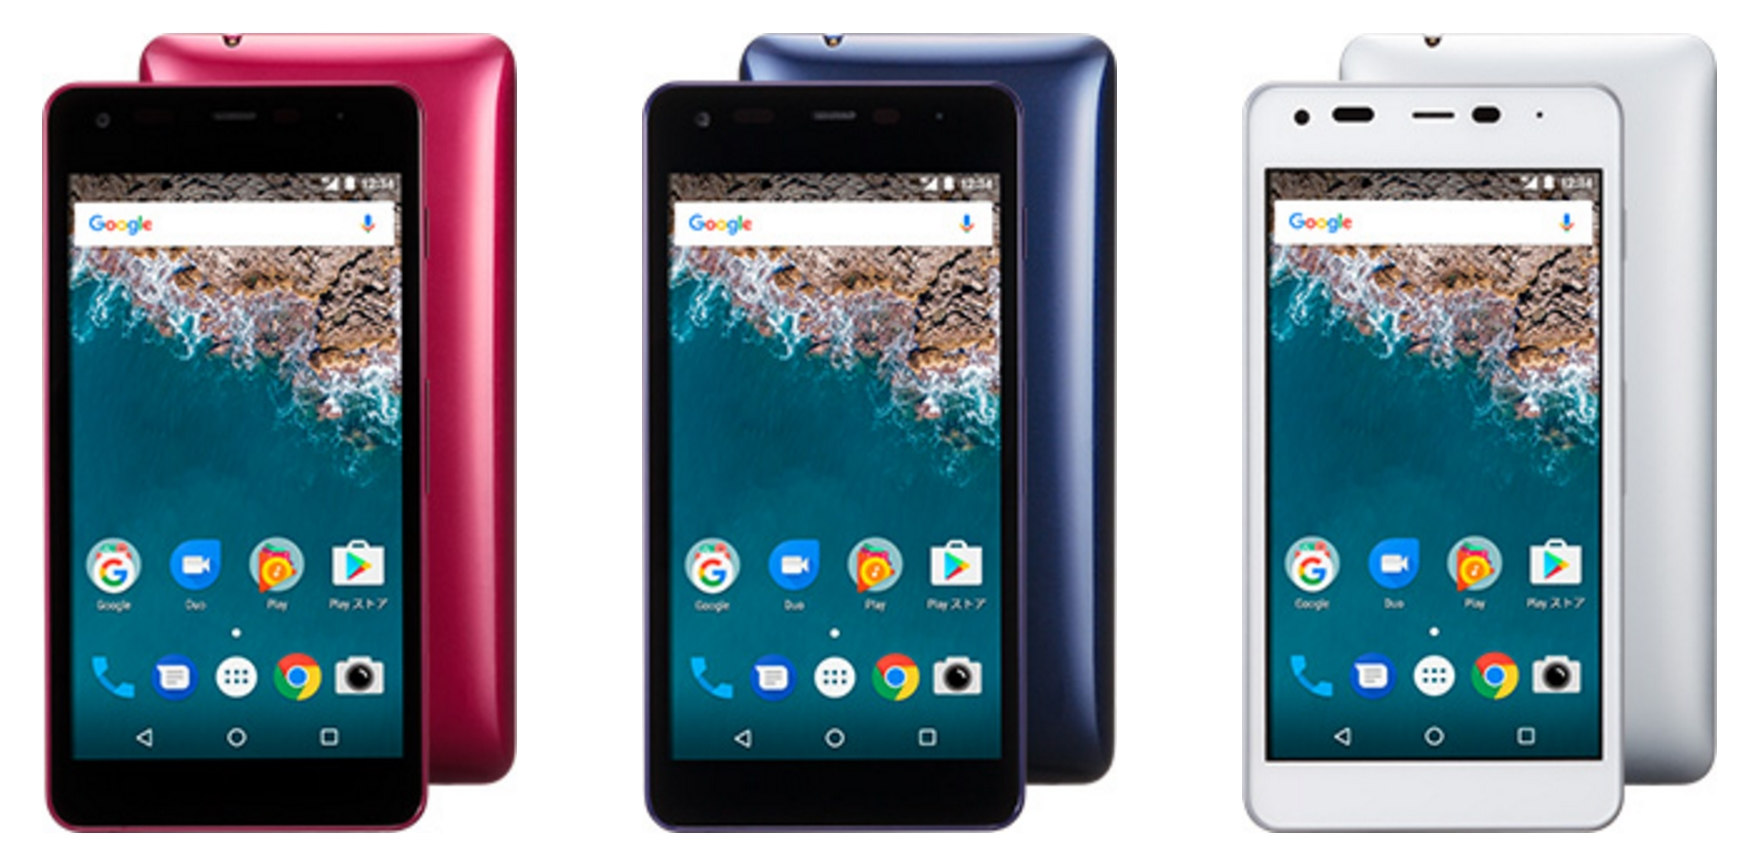 Y!mobile、「Android One S2」にセキュリティパッチ更新を含むアップデートを配信